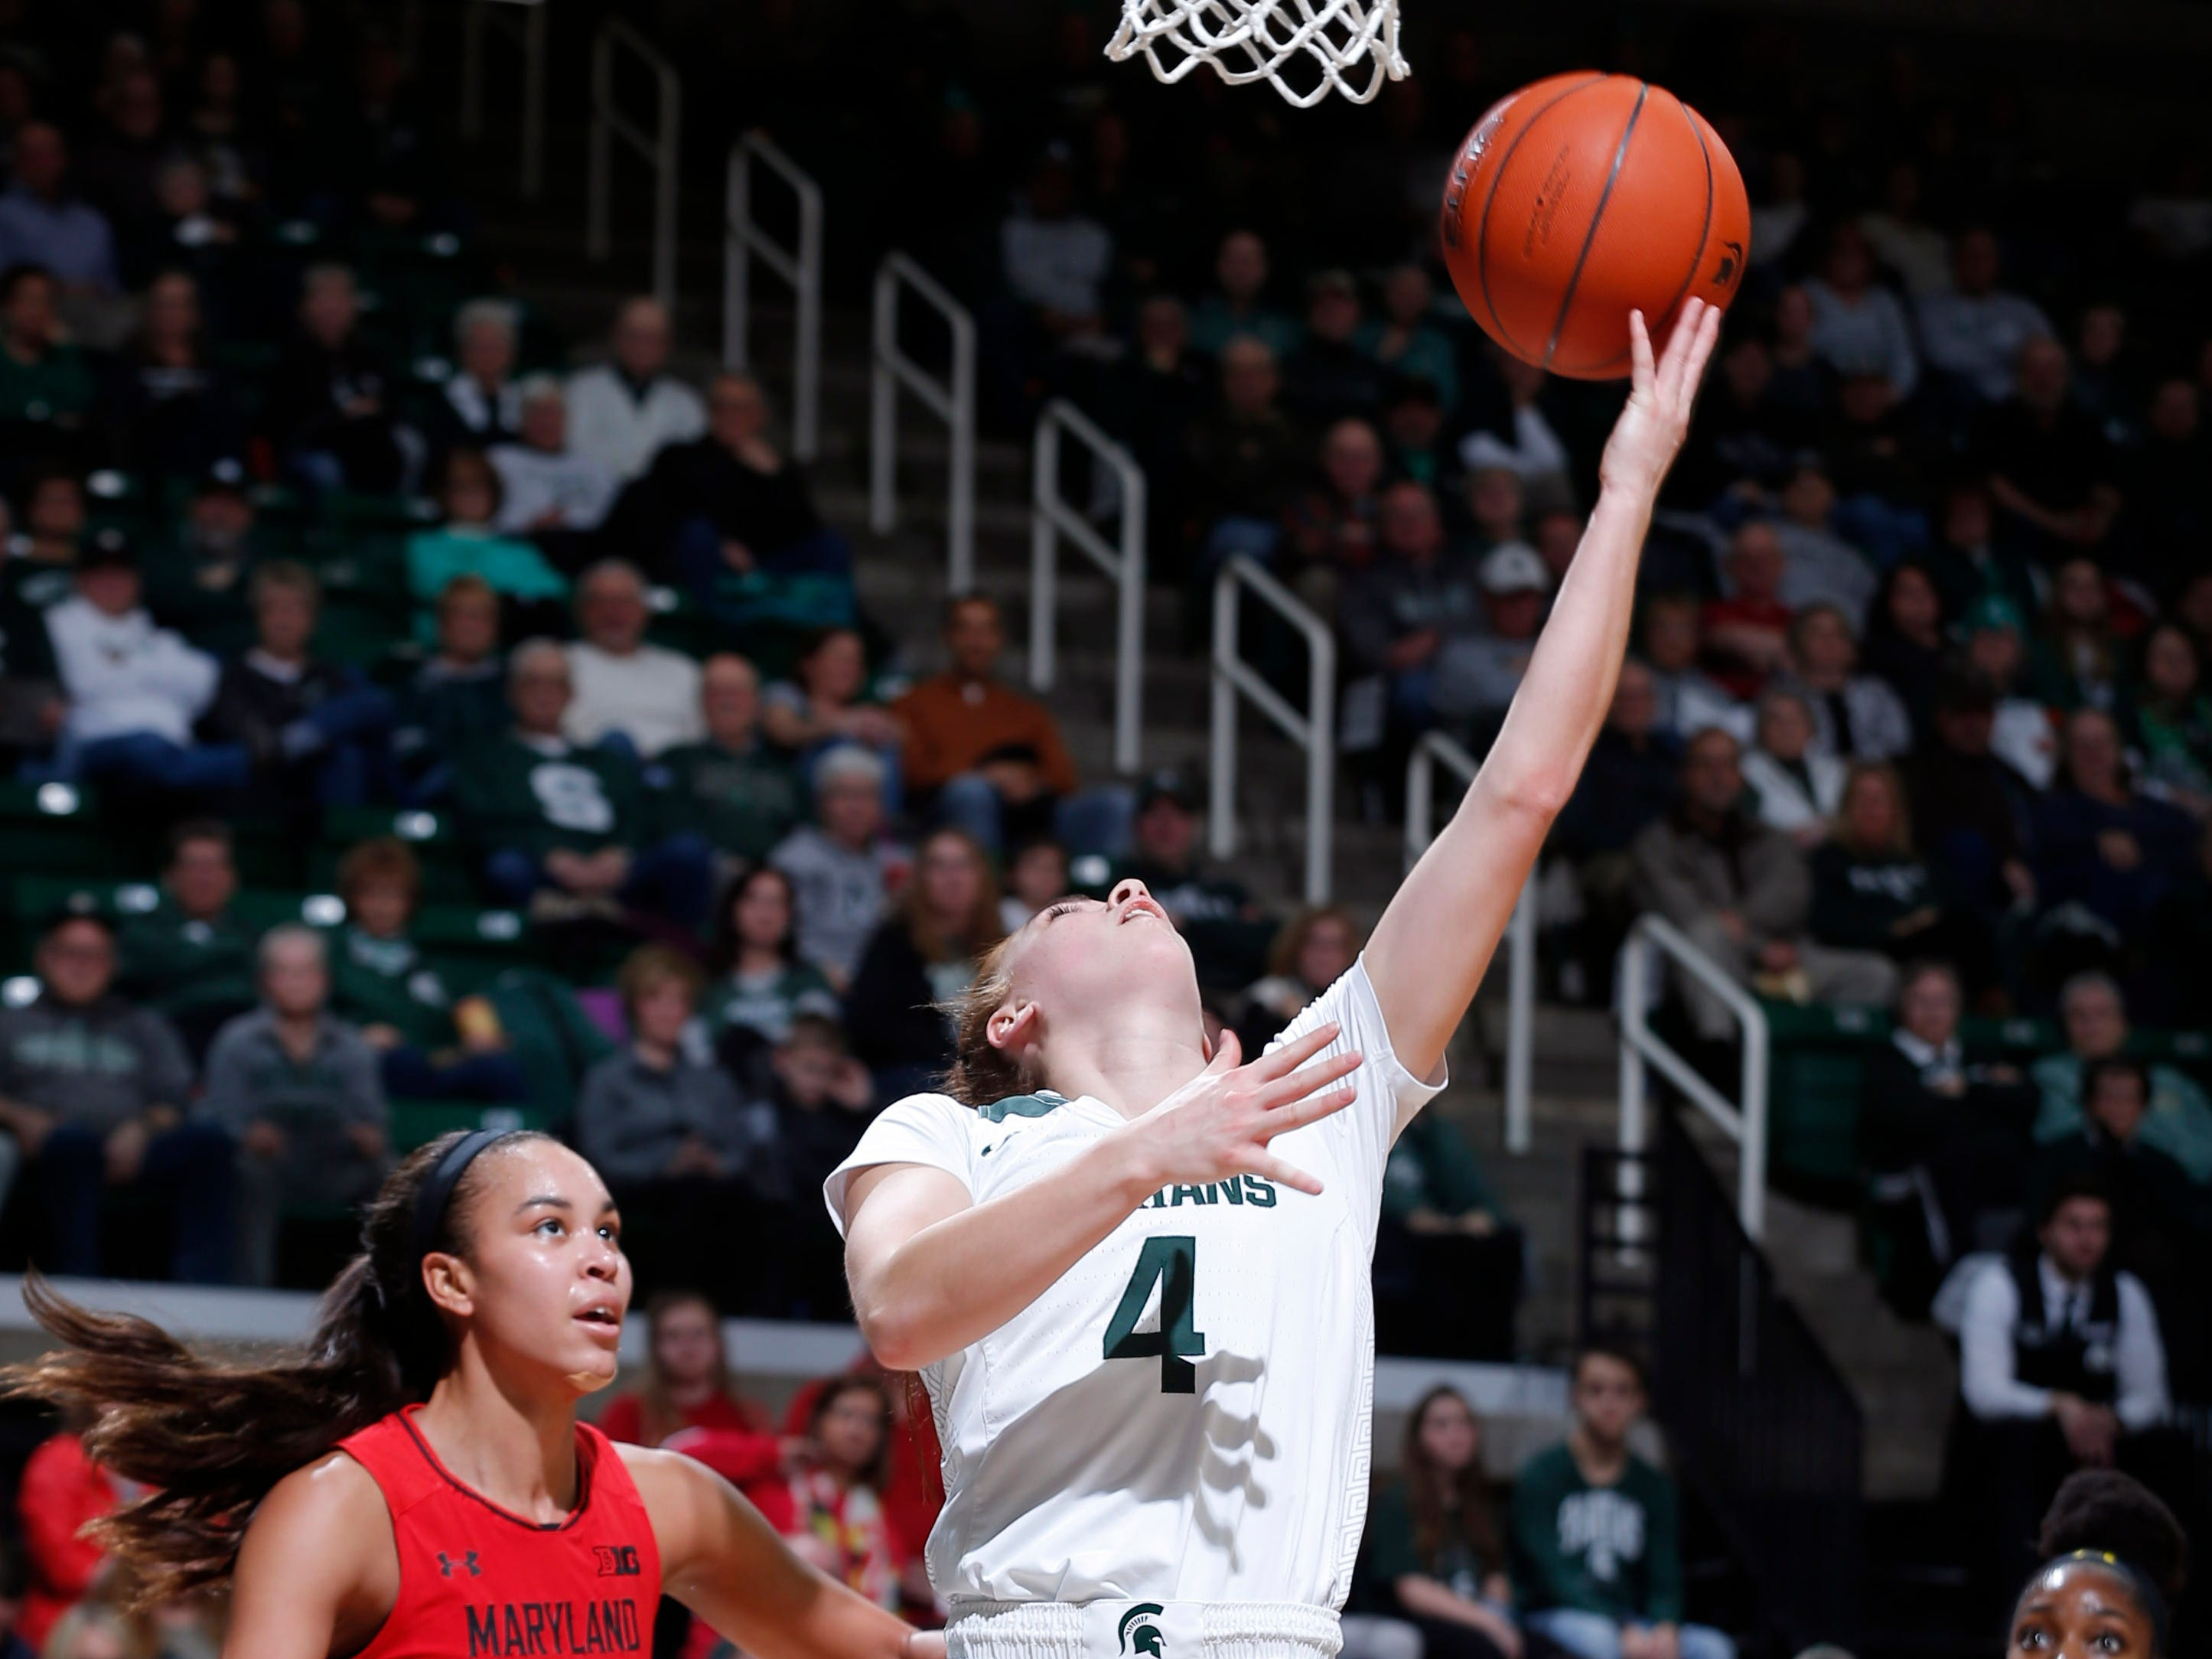 Michigan State's Taryn McCutcheon gets a reverse layup against Maryland's Stephanie Jones, left, and Kaila Charles, right, Thursday, Jan. 17, 2019, in East Lansing, Mich.